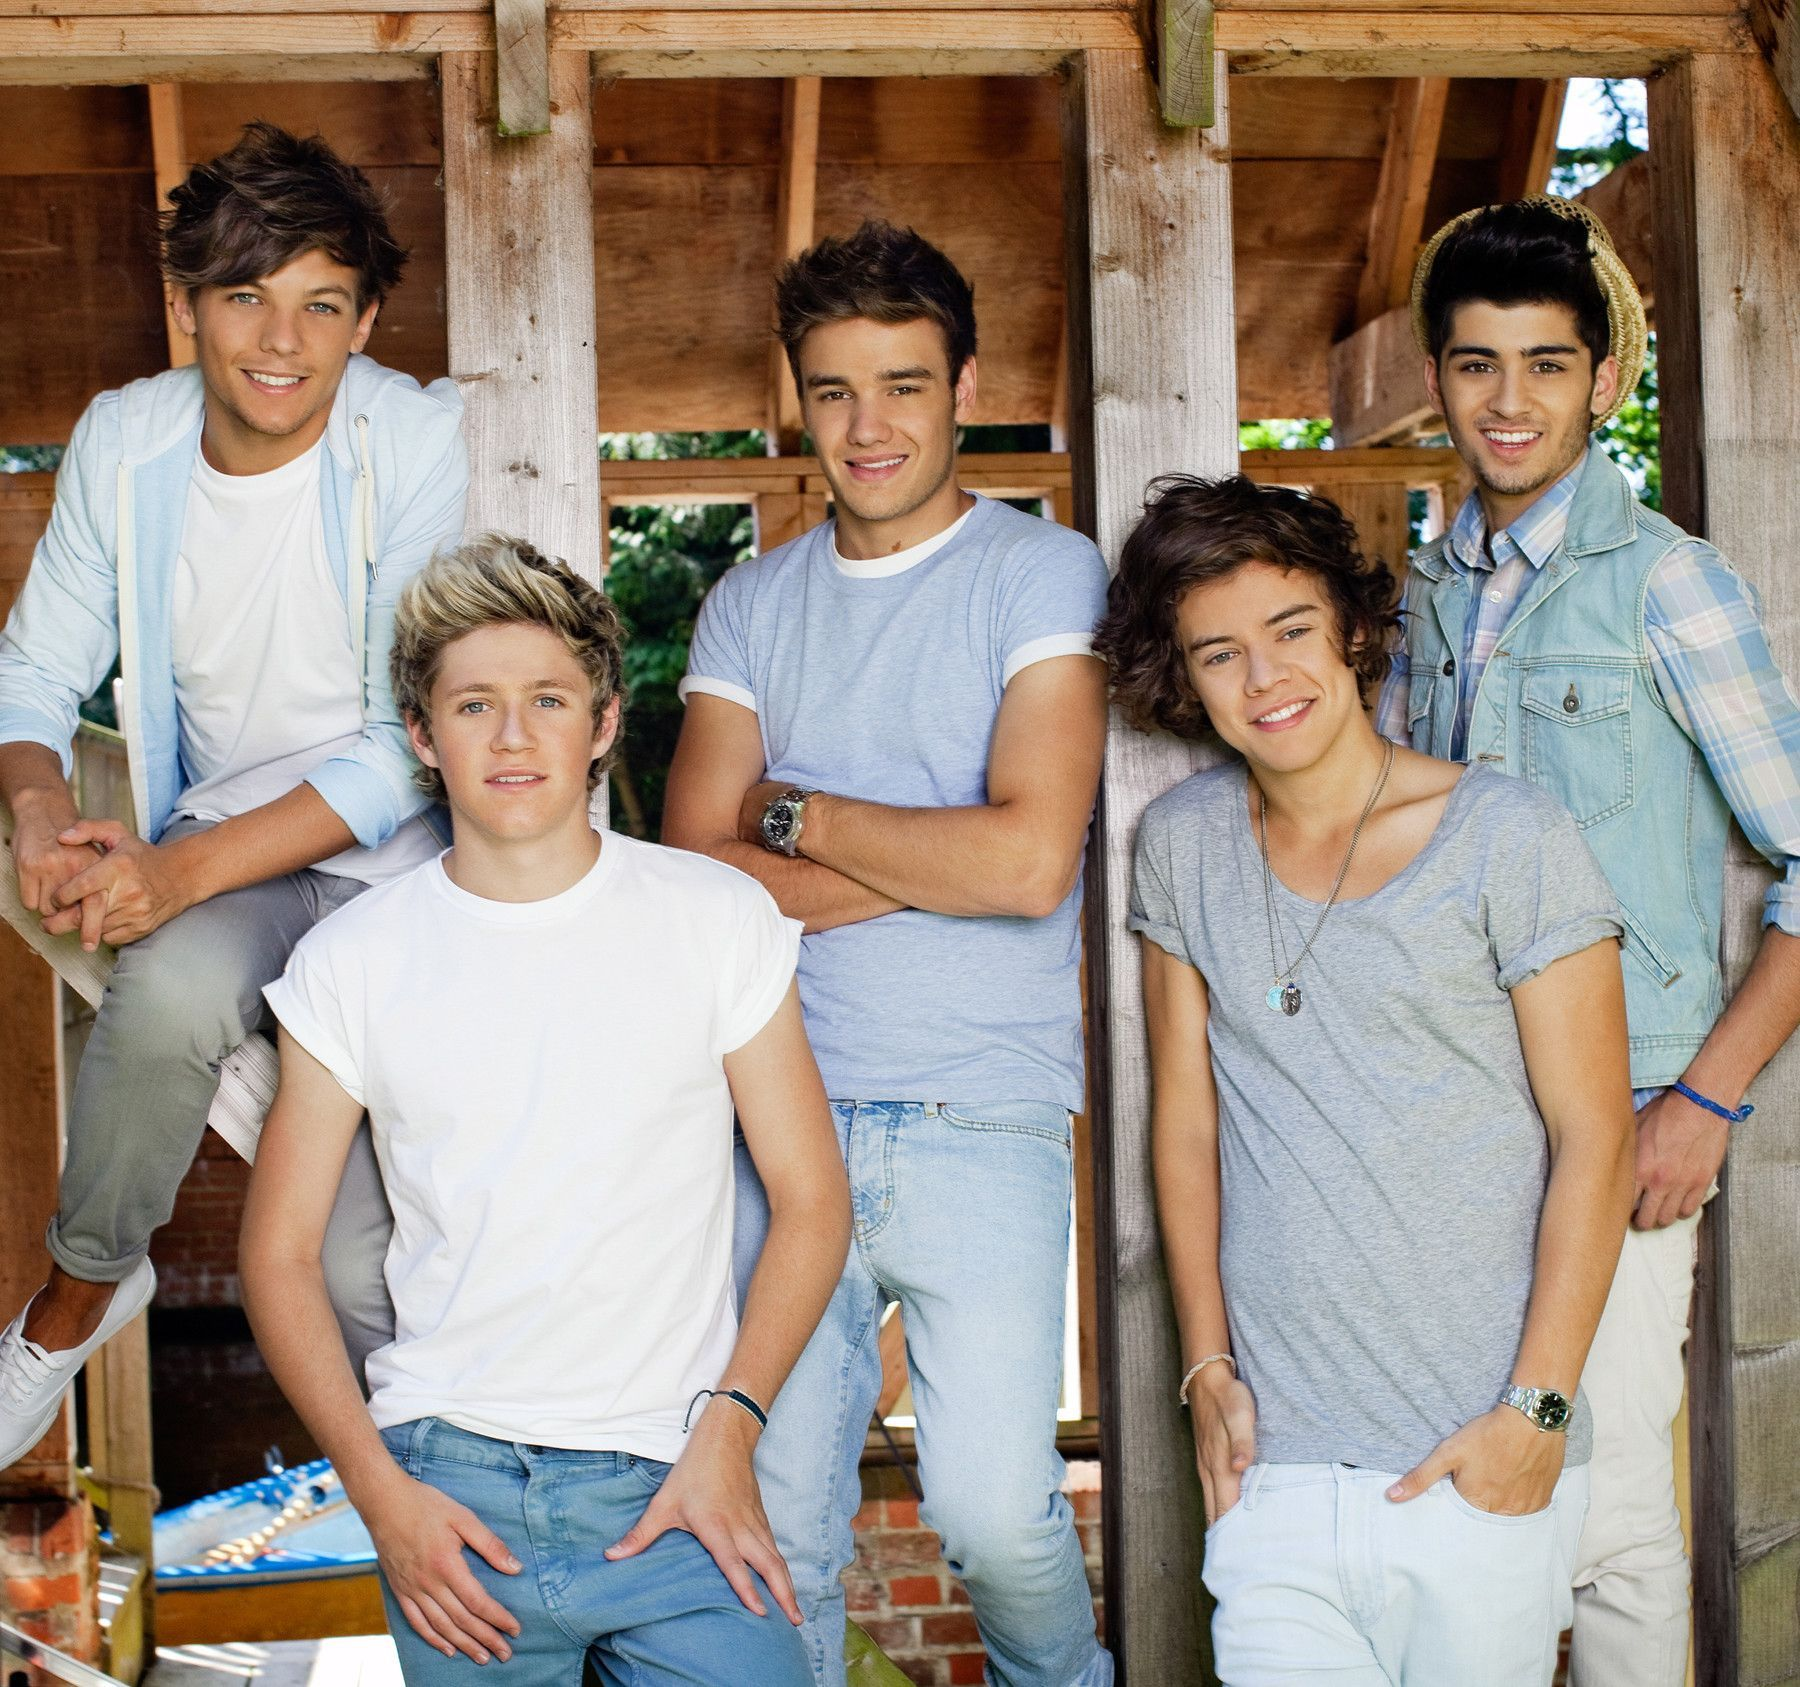 One Direction Barn Wall Mural #onedirection2014